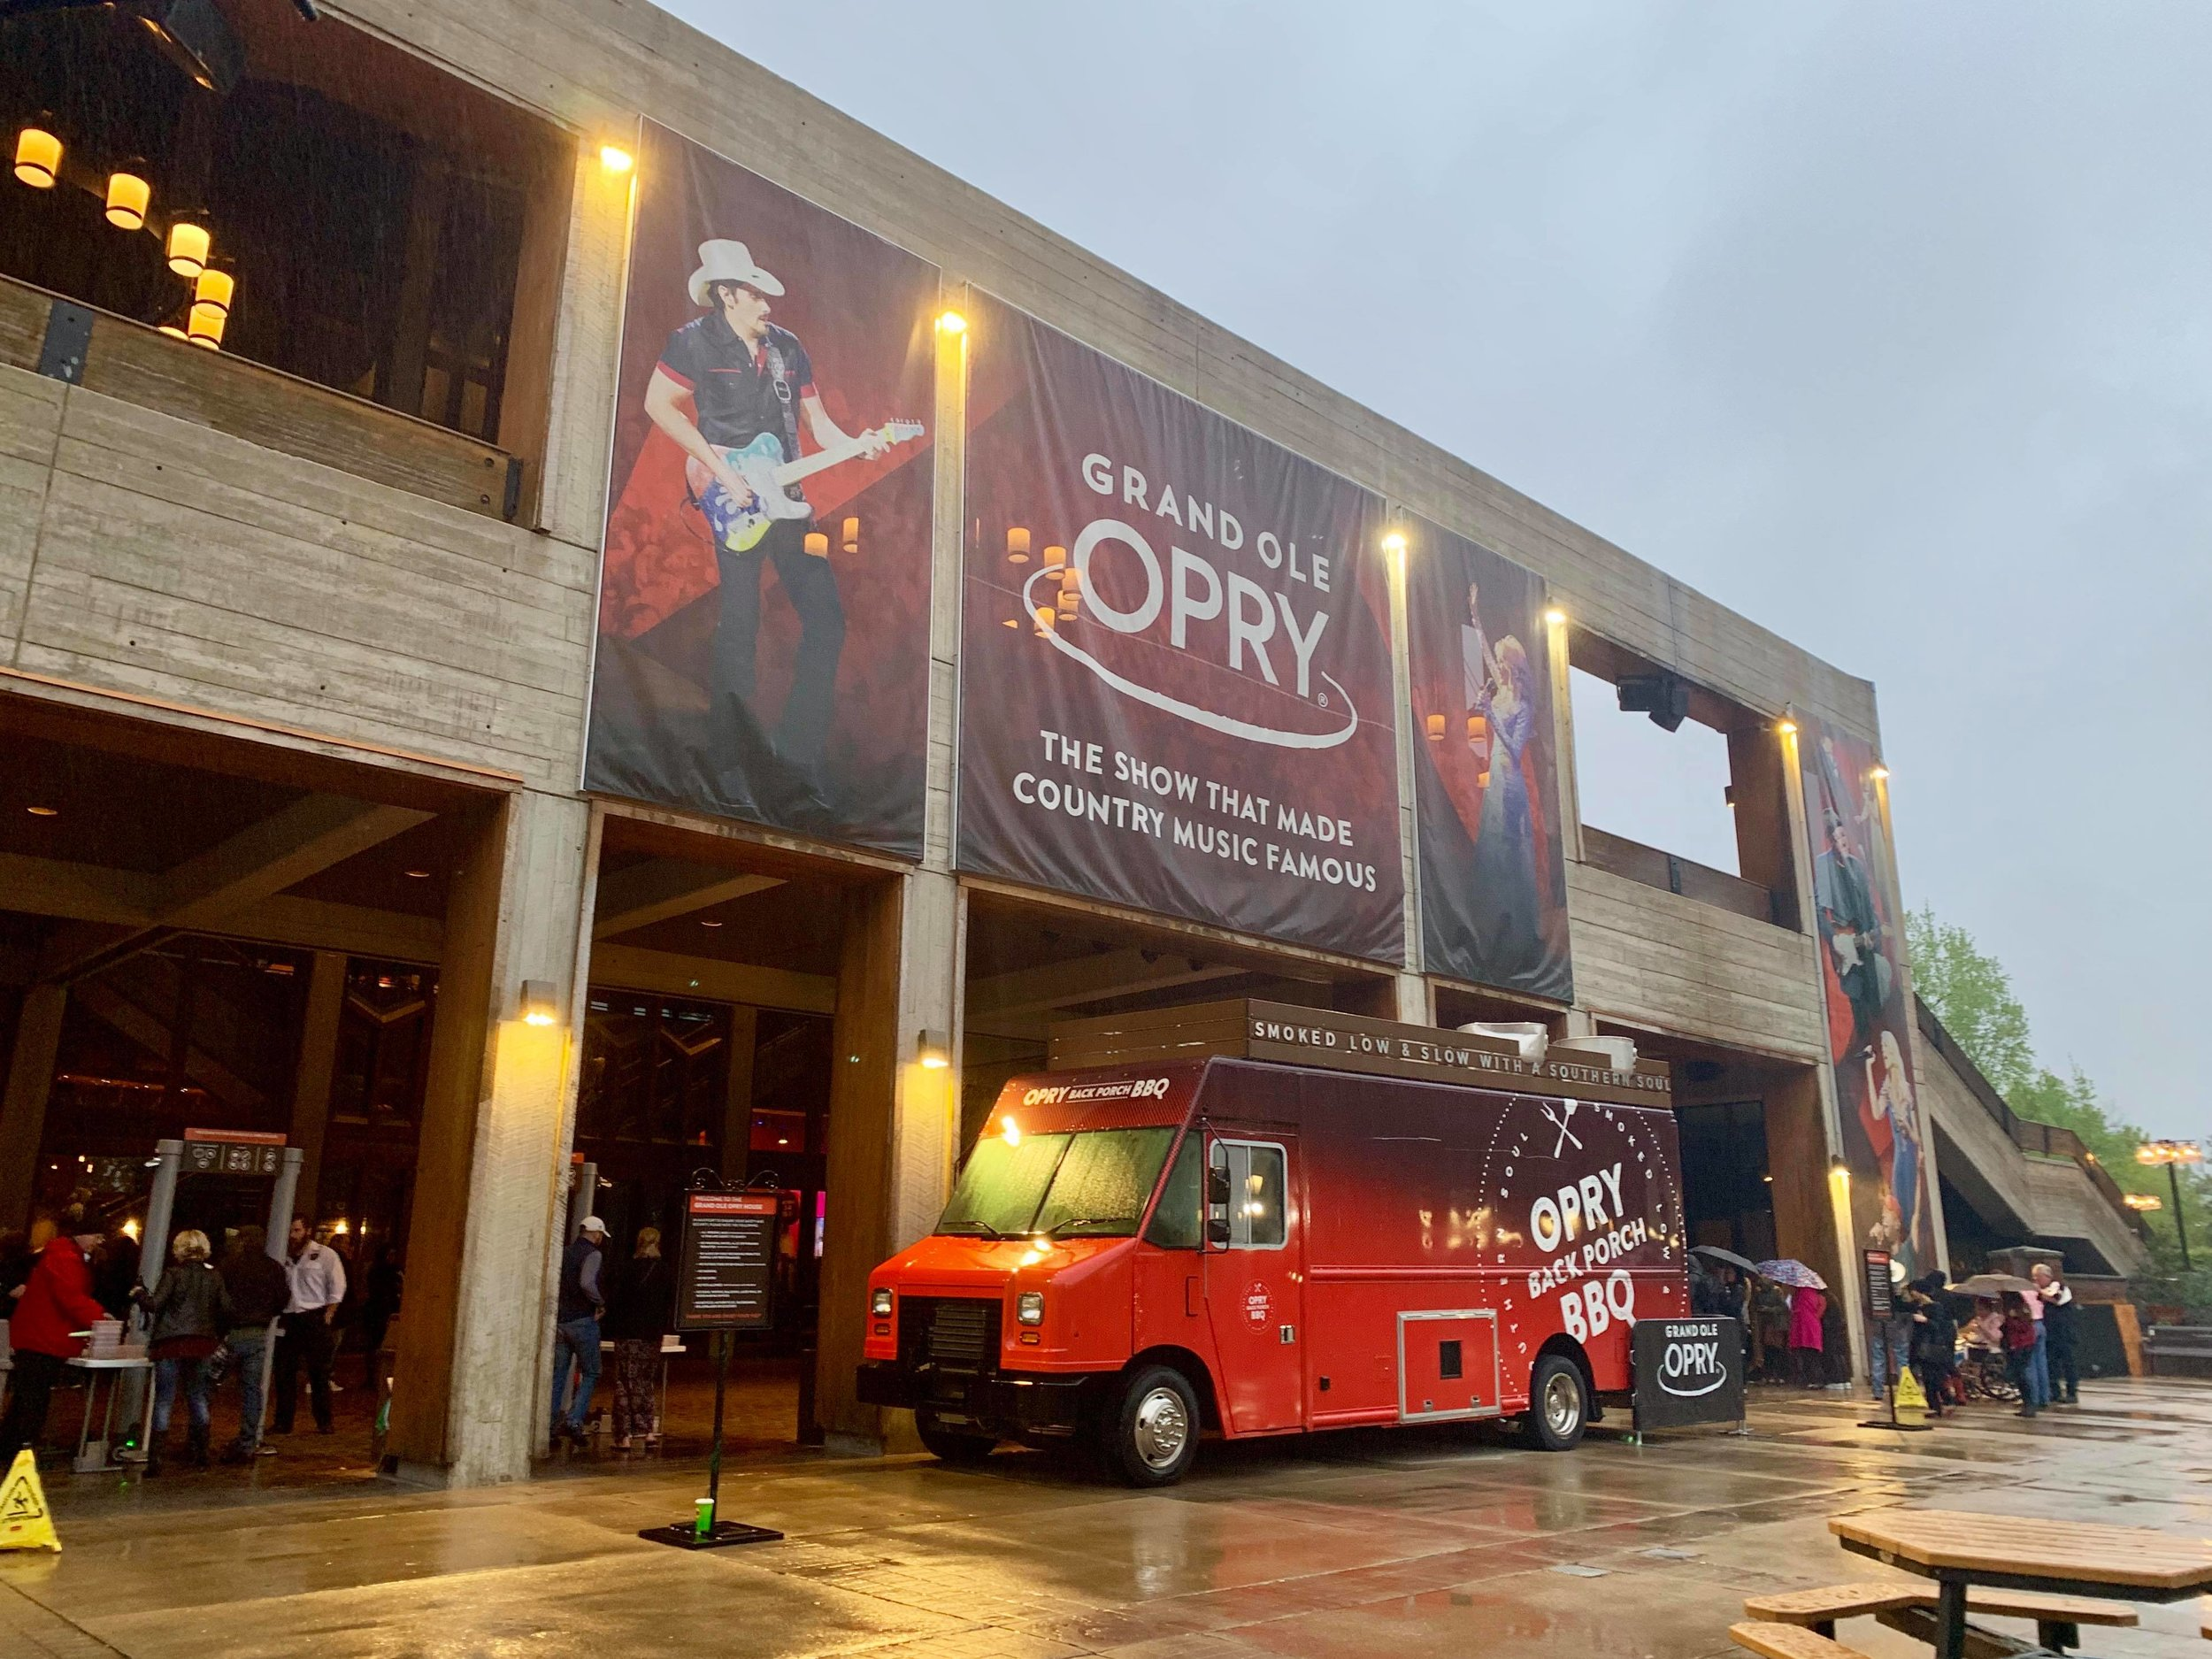 - After about 10 hours of driving, our first stop - a must in this town: the Grand Ole Opry. With its beginnings as a radio show in 1925, today the venue is the world-renowned stage for country music.